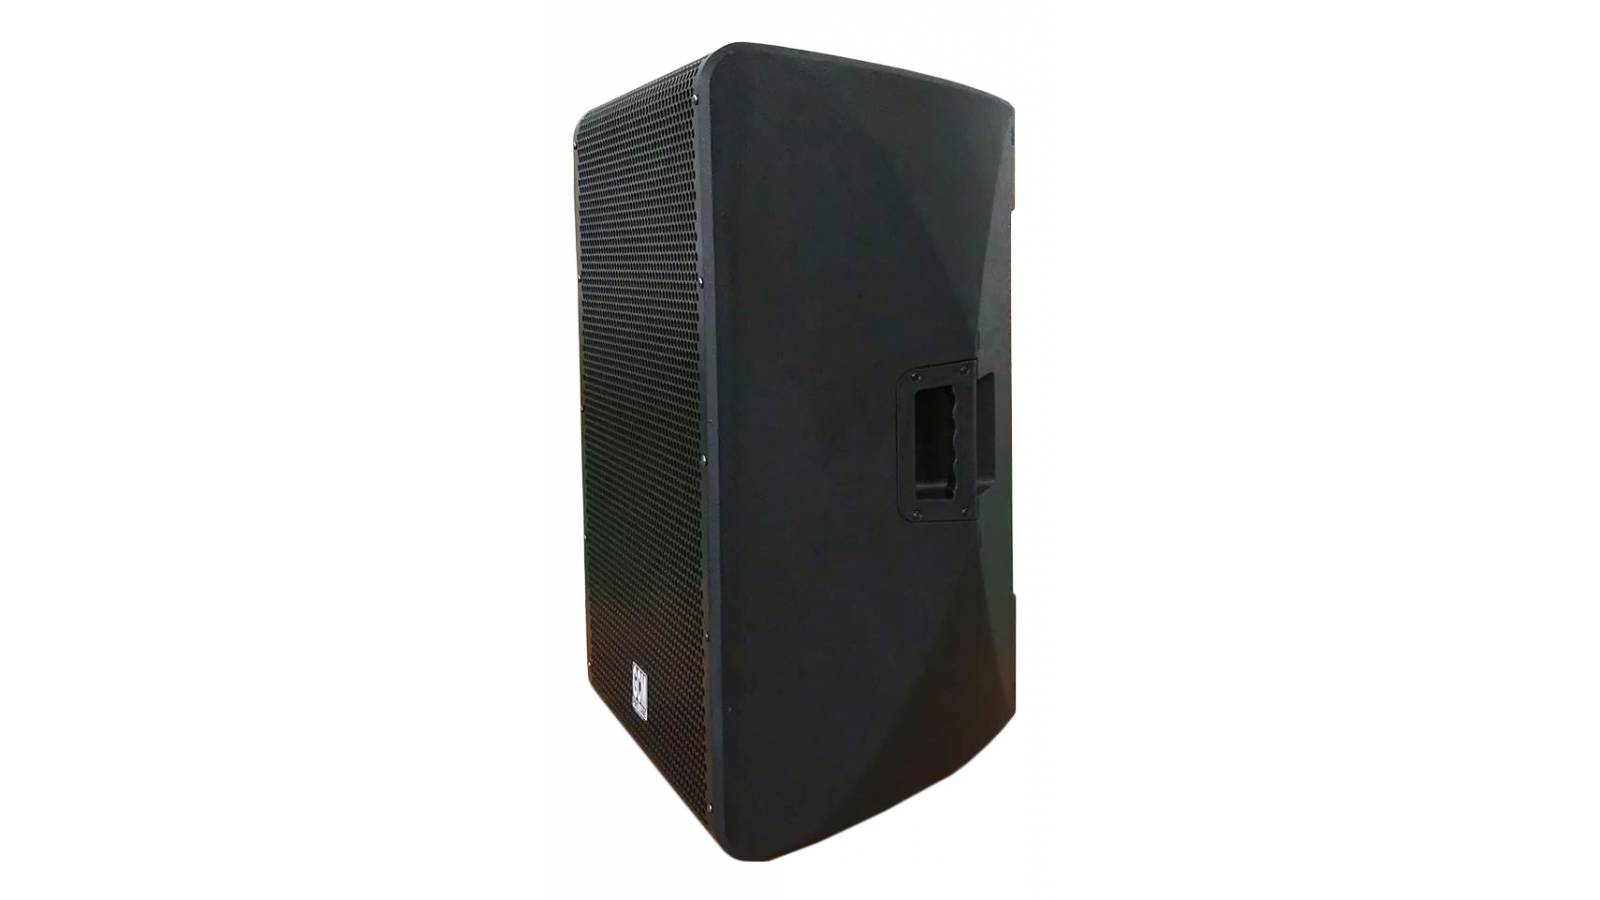 Caja Activa DIGITAL con DSP GCM Pro GXL-15D 450W RMS reales